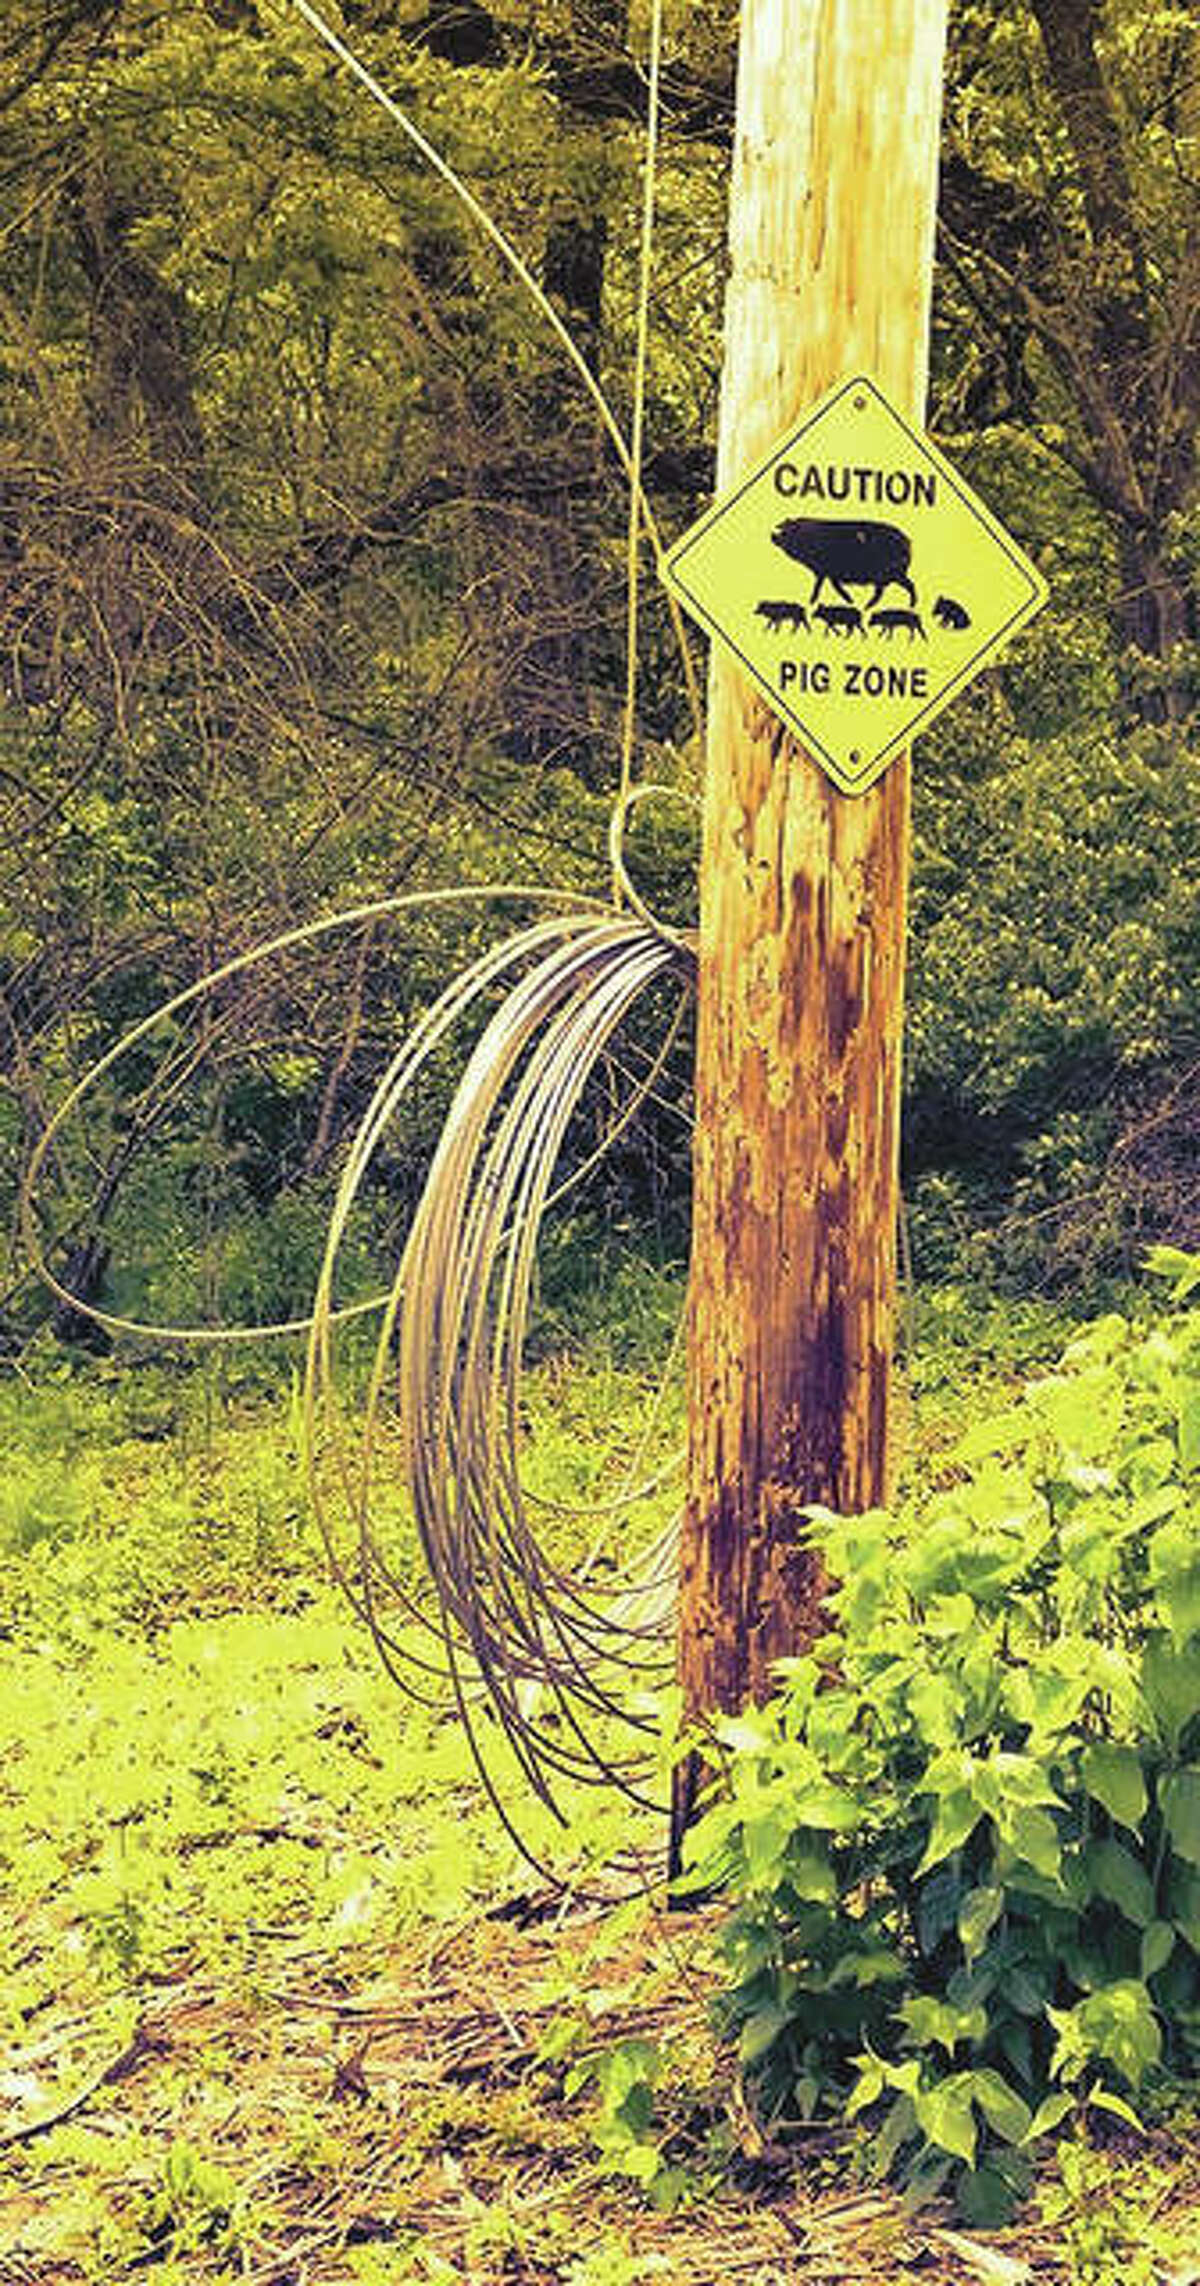 A leftover sign from a bygone time cautions people to watch for pigs in eastern Pike County.